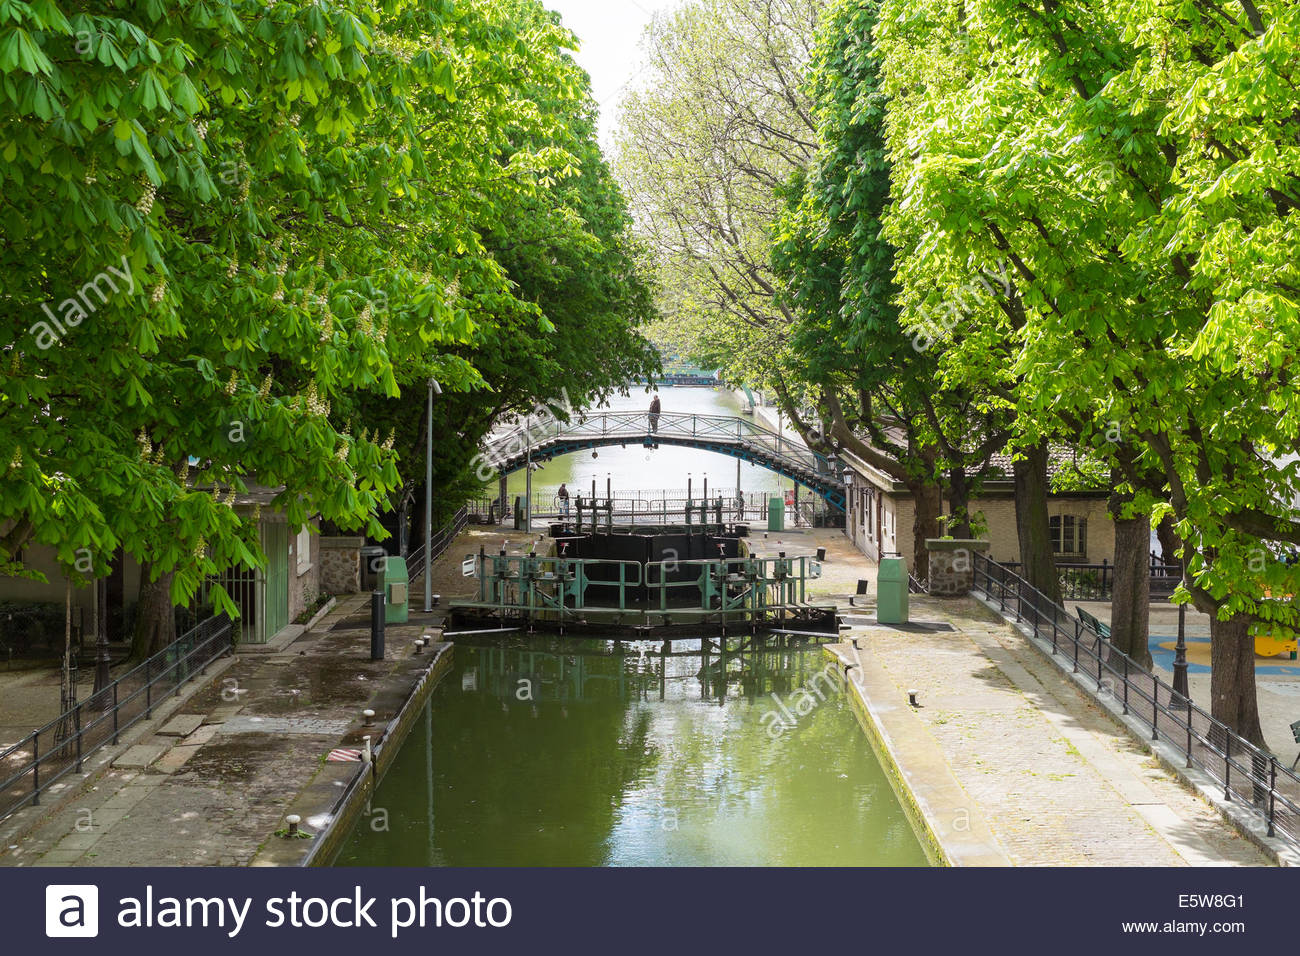 Locks and footbridges along the Canal St. Martin, Paris, Îsle-de-France, France - Stock Image